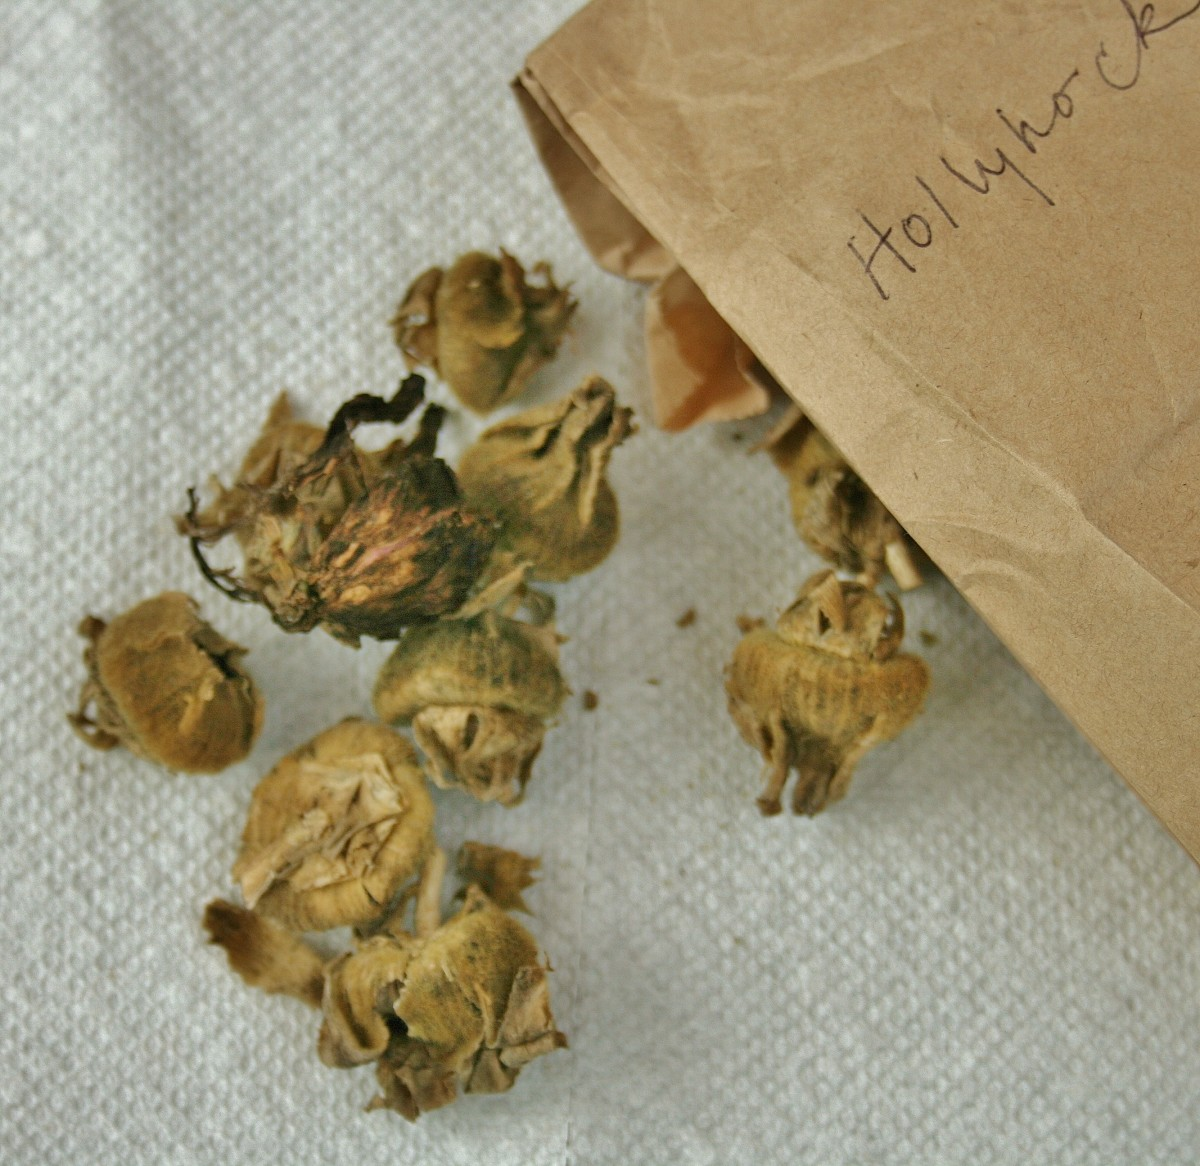 Pull open dried seed pods to release the hollyhock seeds.